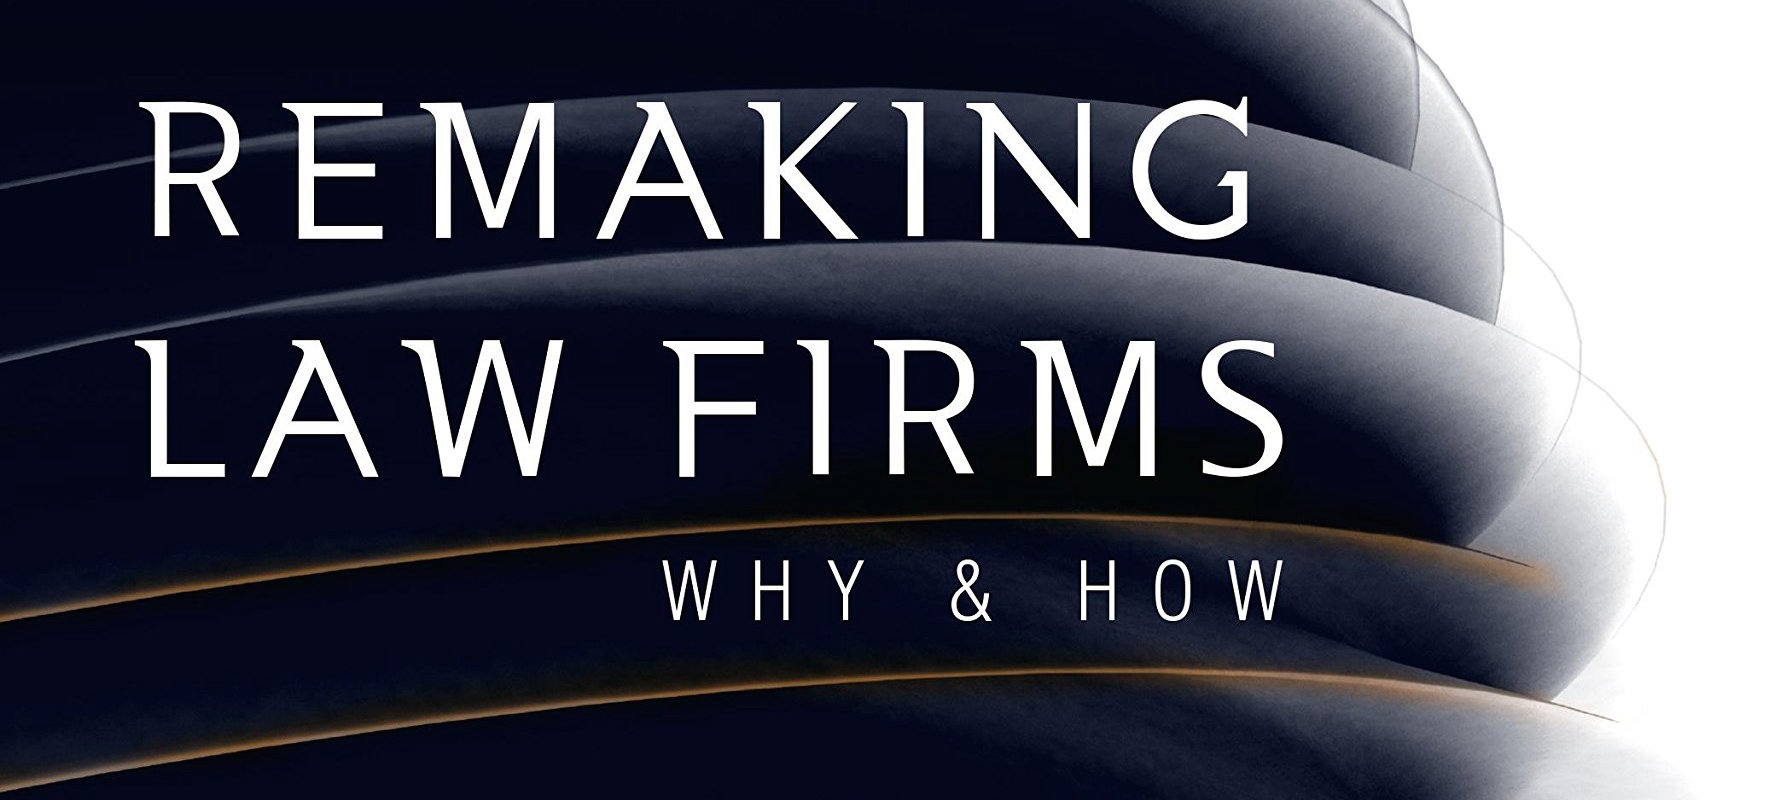 Remaking Law Firms Book Cover